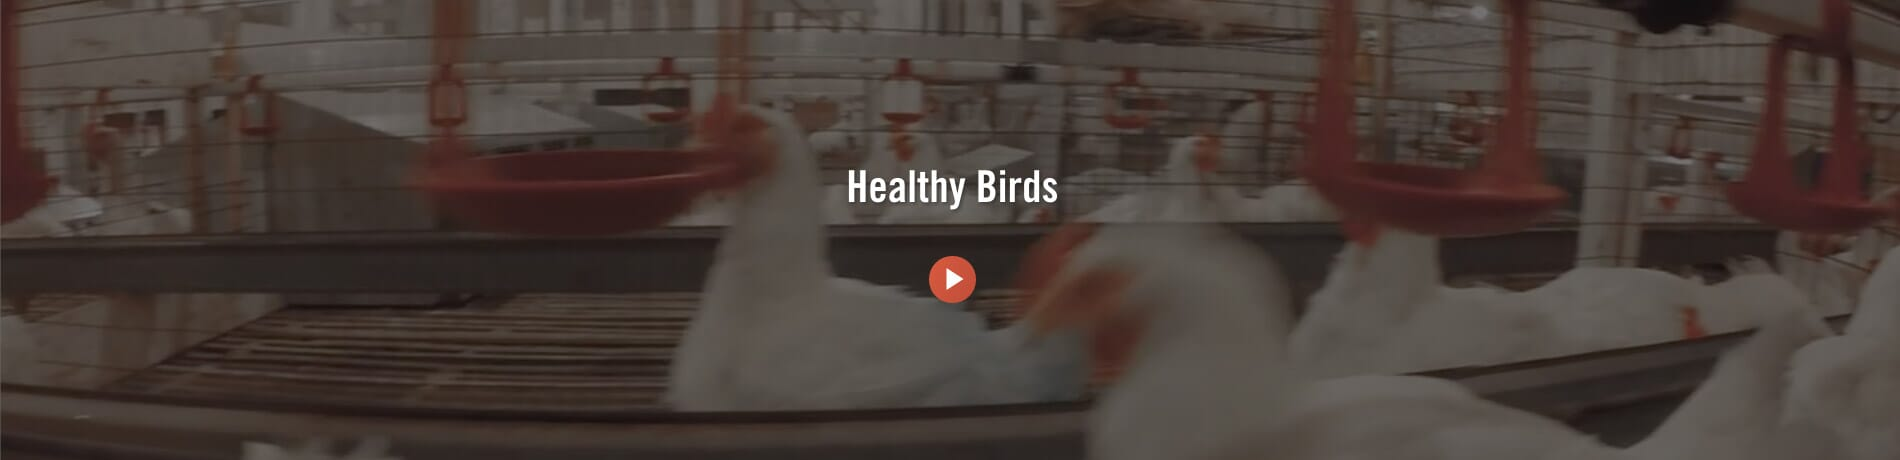 Healthy Birds - Cobb